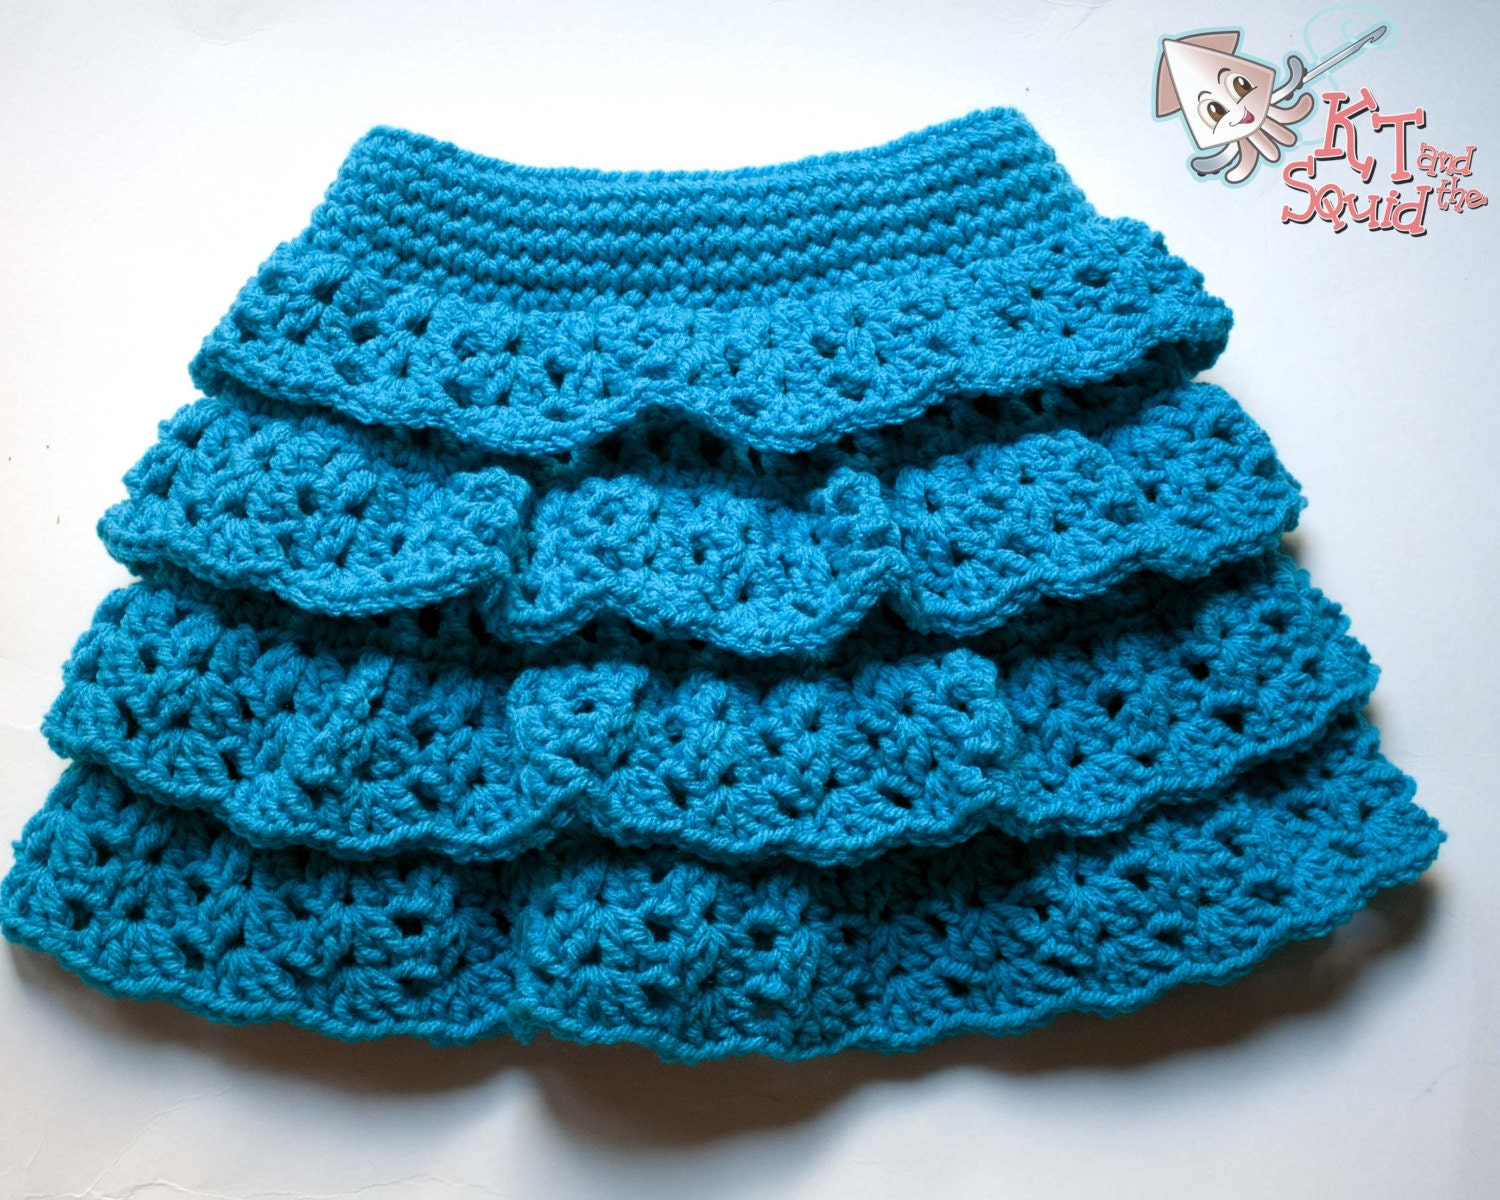 Crochet Ruffle Skirt Pattern Free